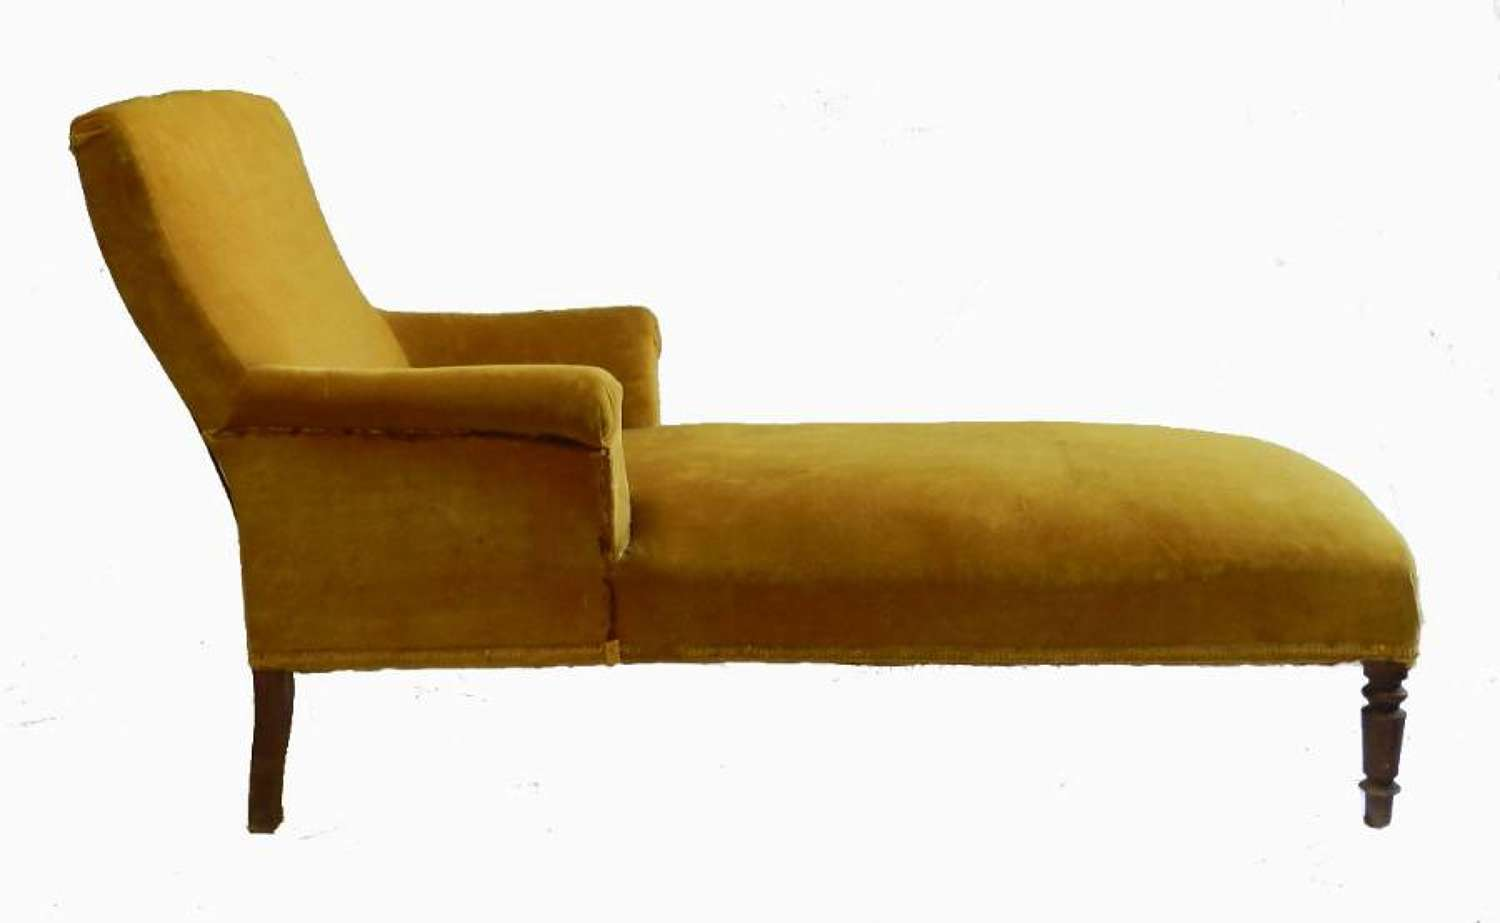 C19 French Meridienne Sofa Chaise Longue to recover